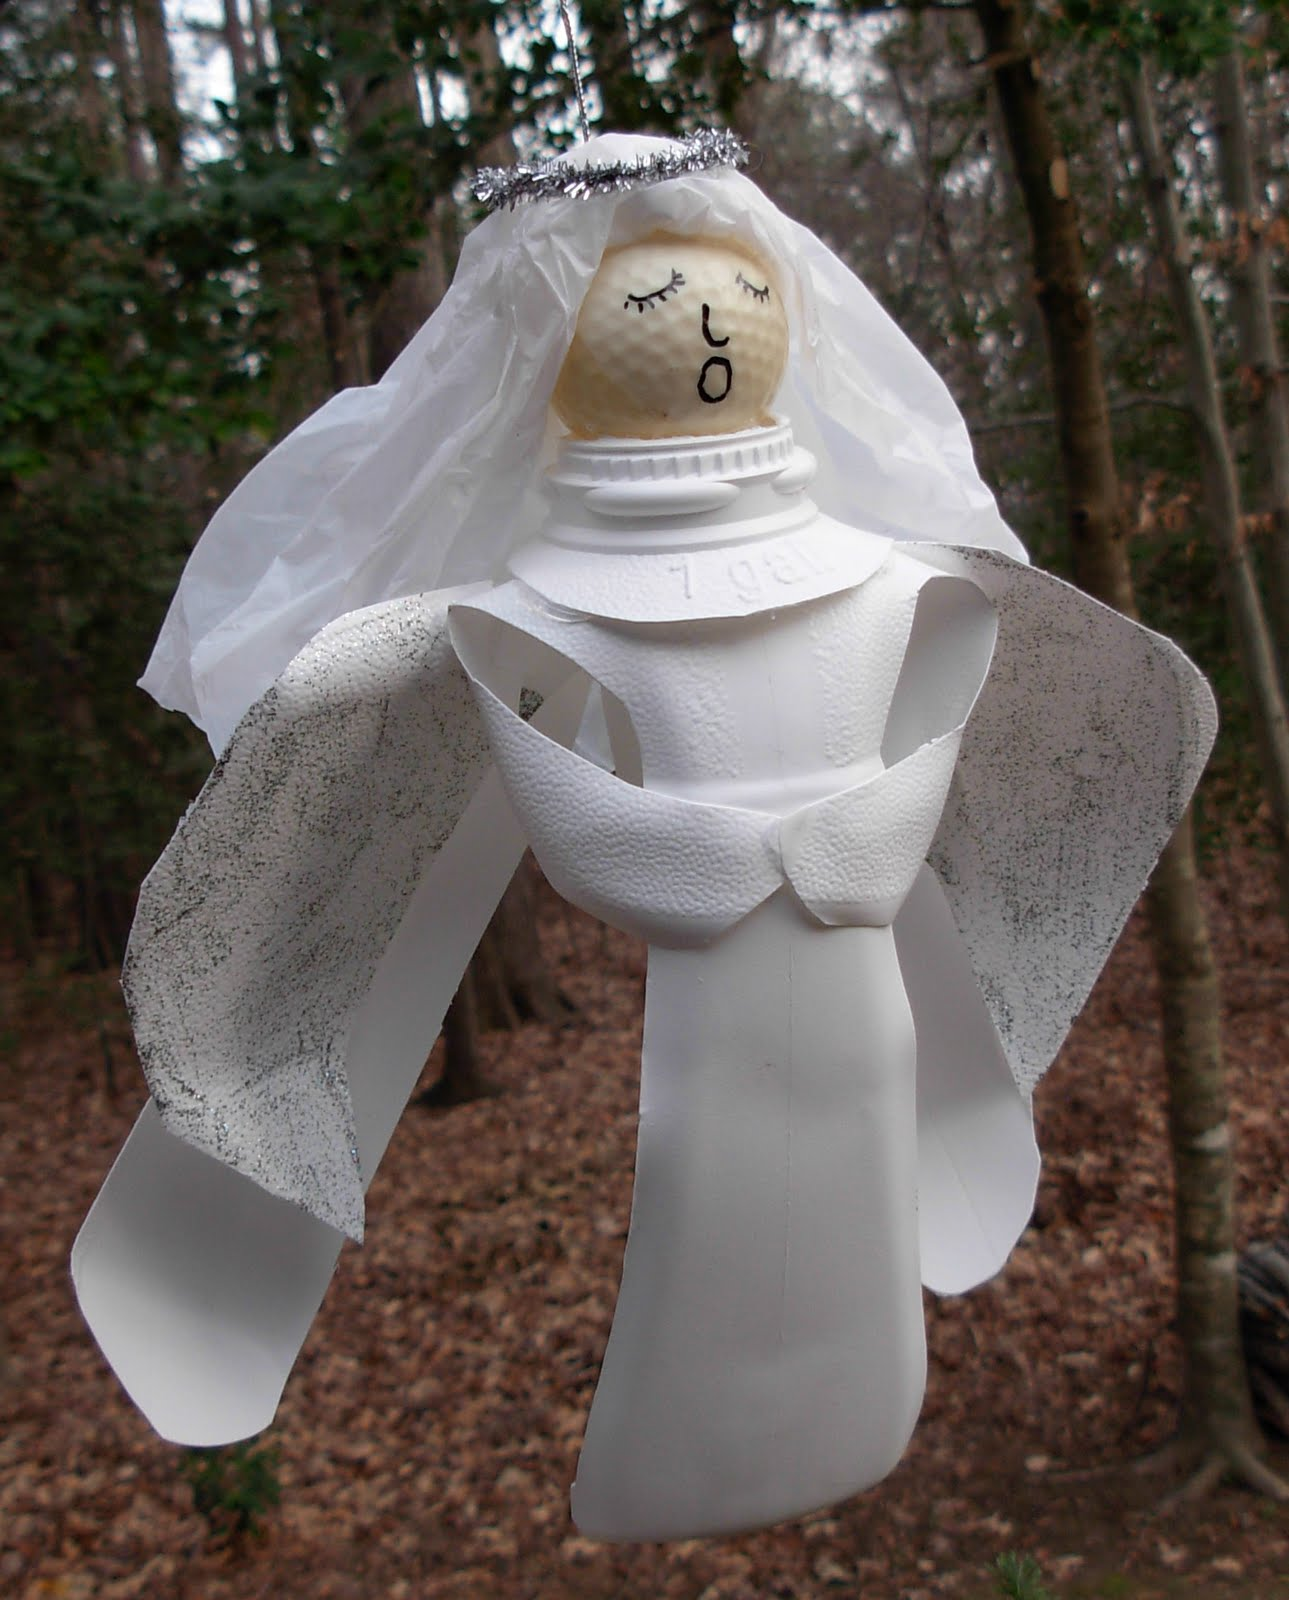 Crack of dawn crafts recycled milk jug angel craft for Christmas crafts with milk jugs